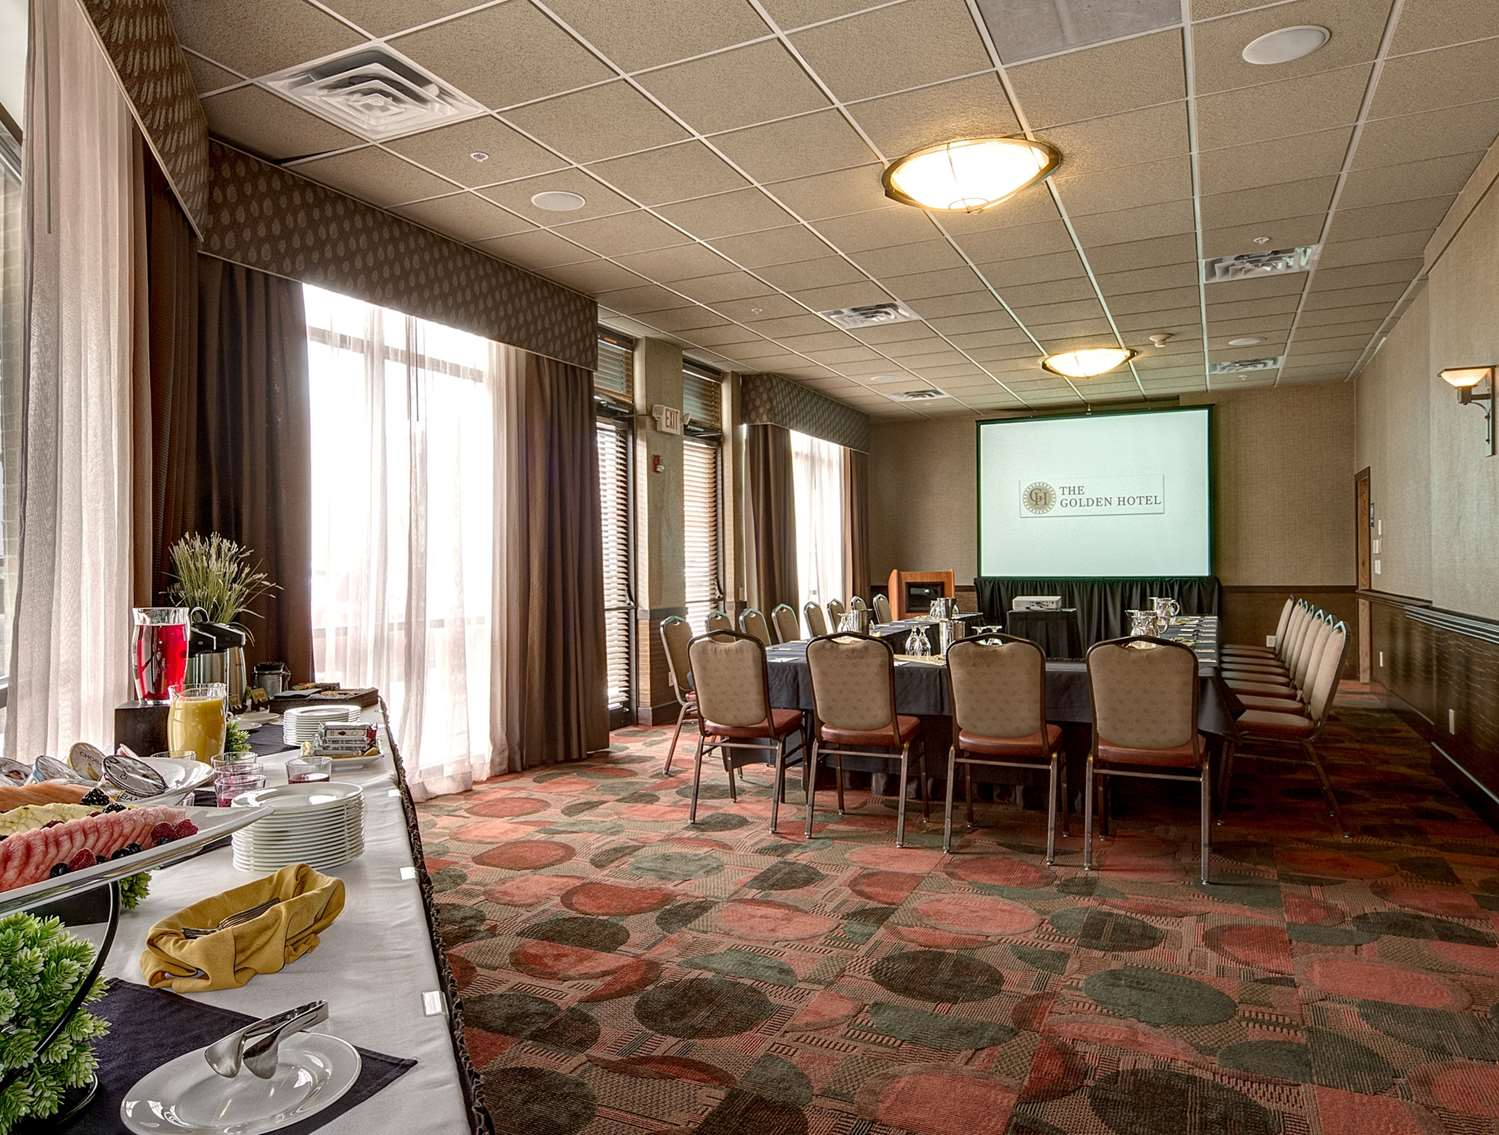 Meeting Facilities - Golden Hotel